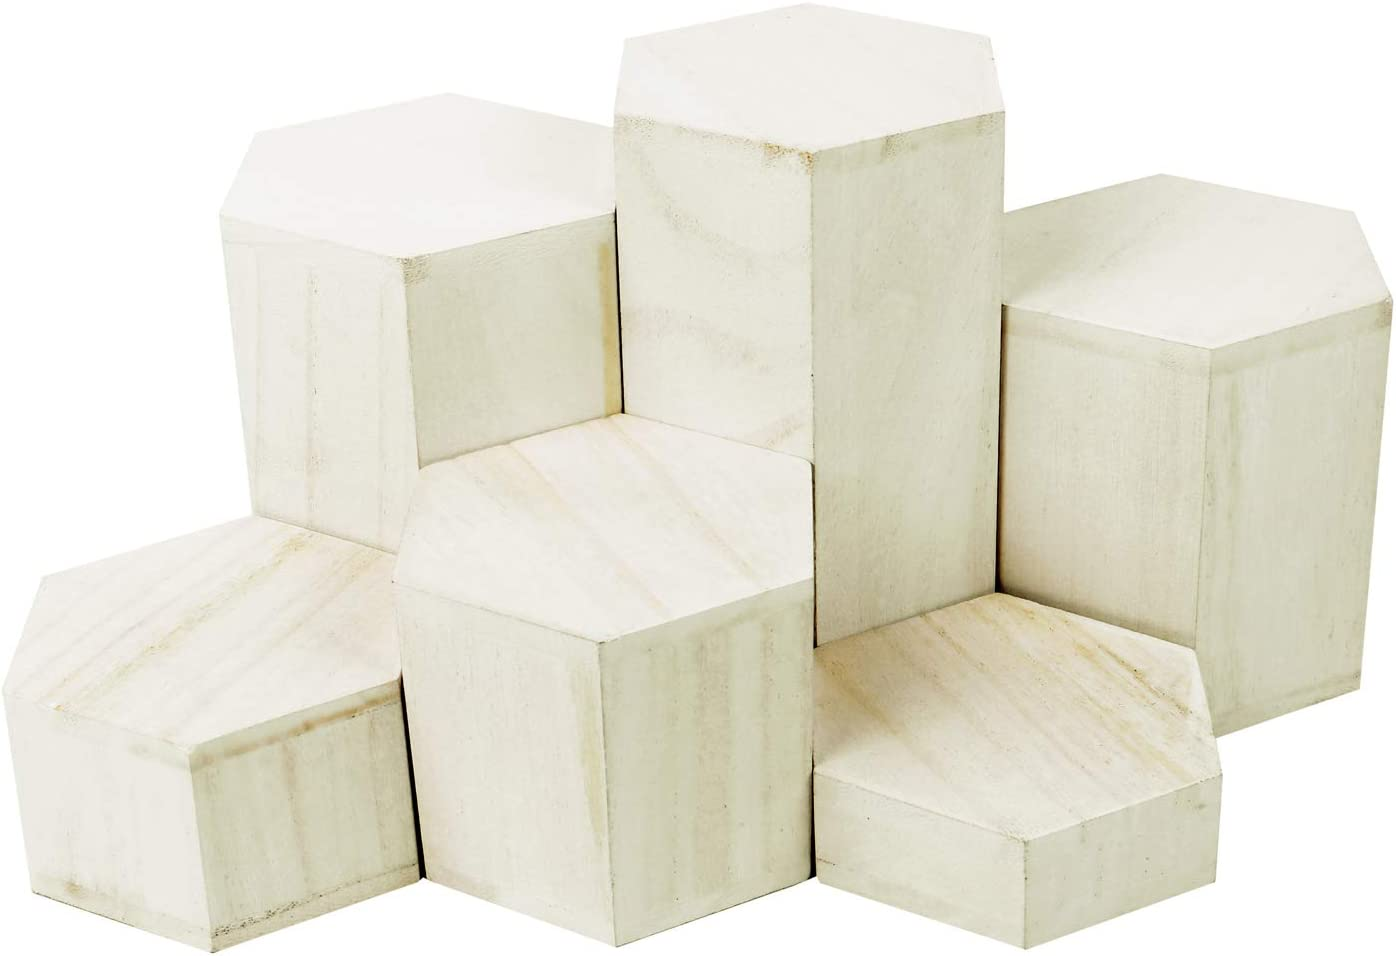 Mooca Wooden 6 Pcs Hexagon Risers for Display Jewelry and Accessories Display Stand, Wooden Display Risers, Wood Jewelry Risers Wood Figurine Display Risers, Wash White